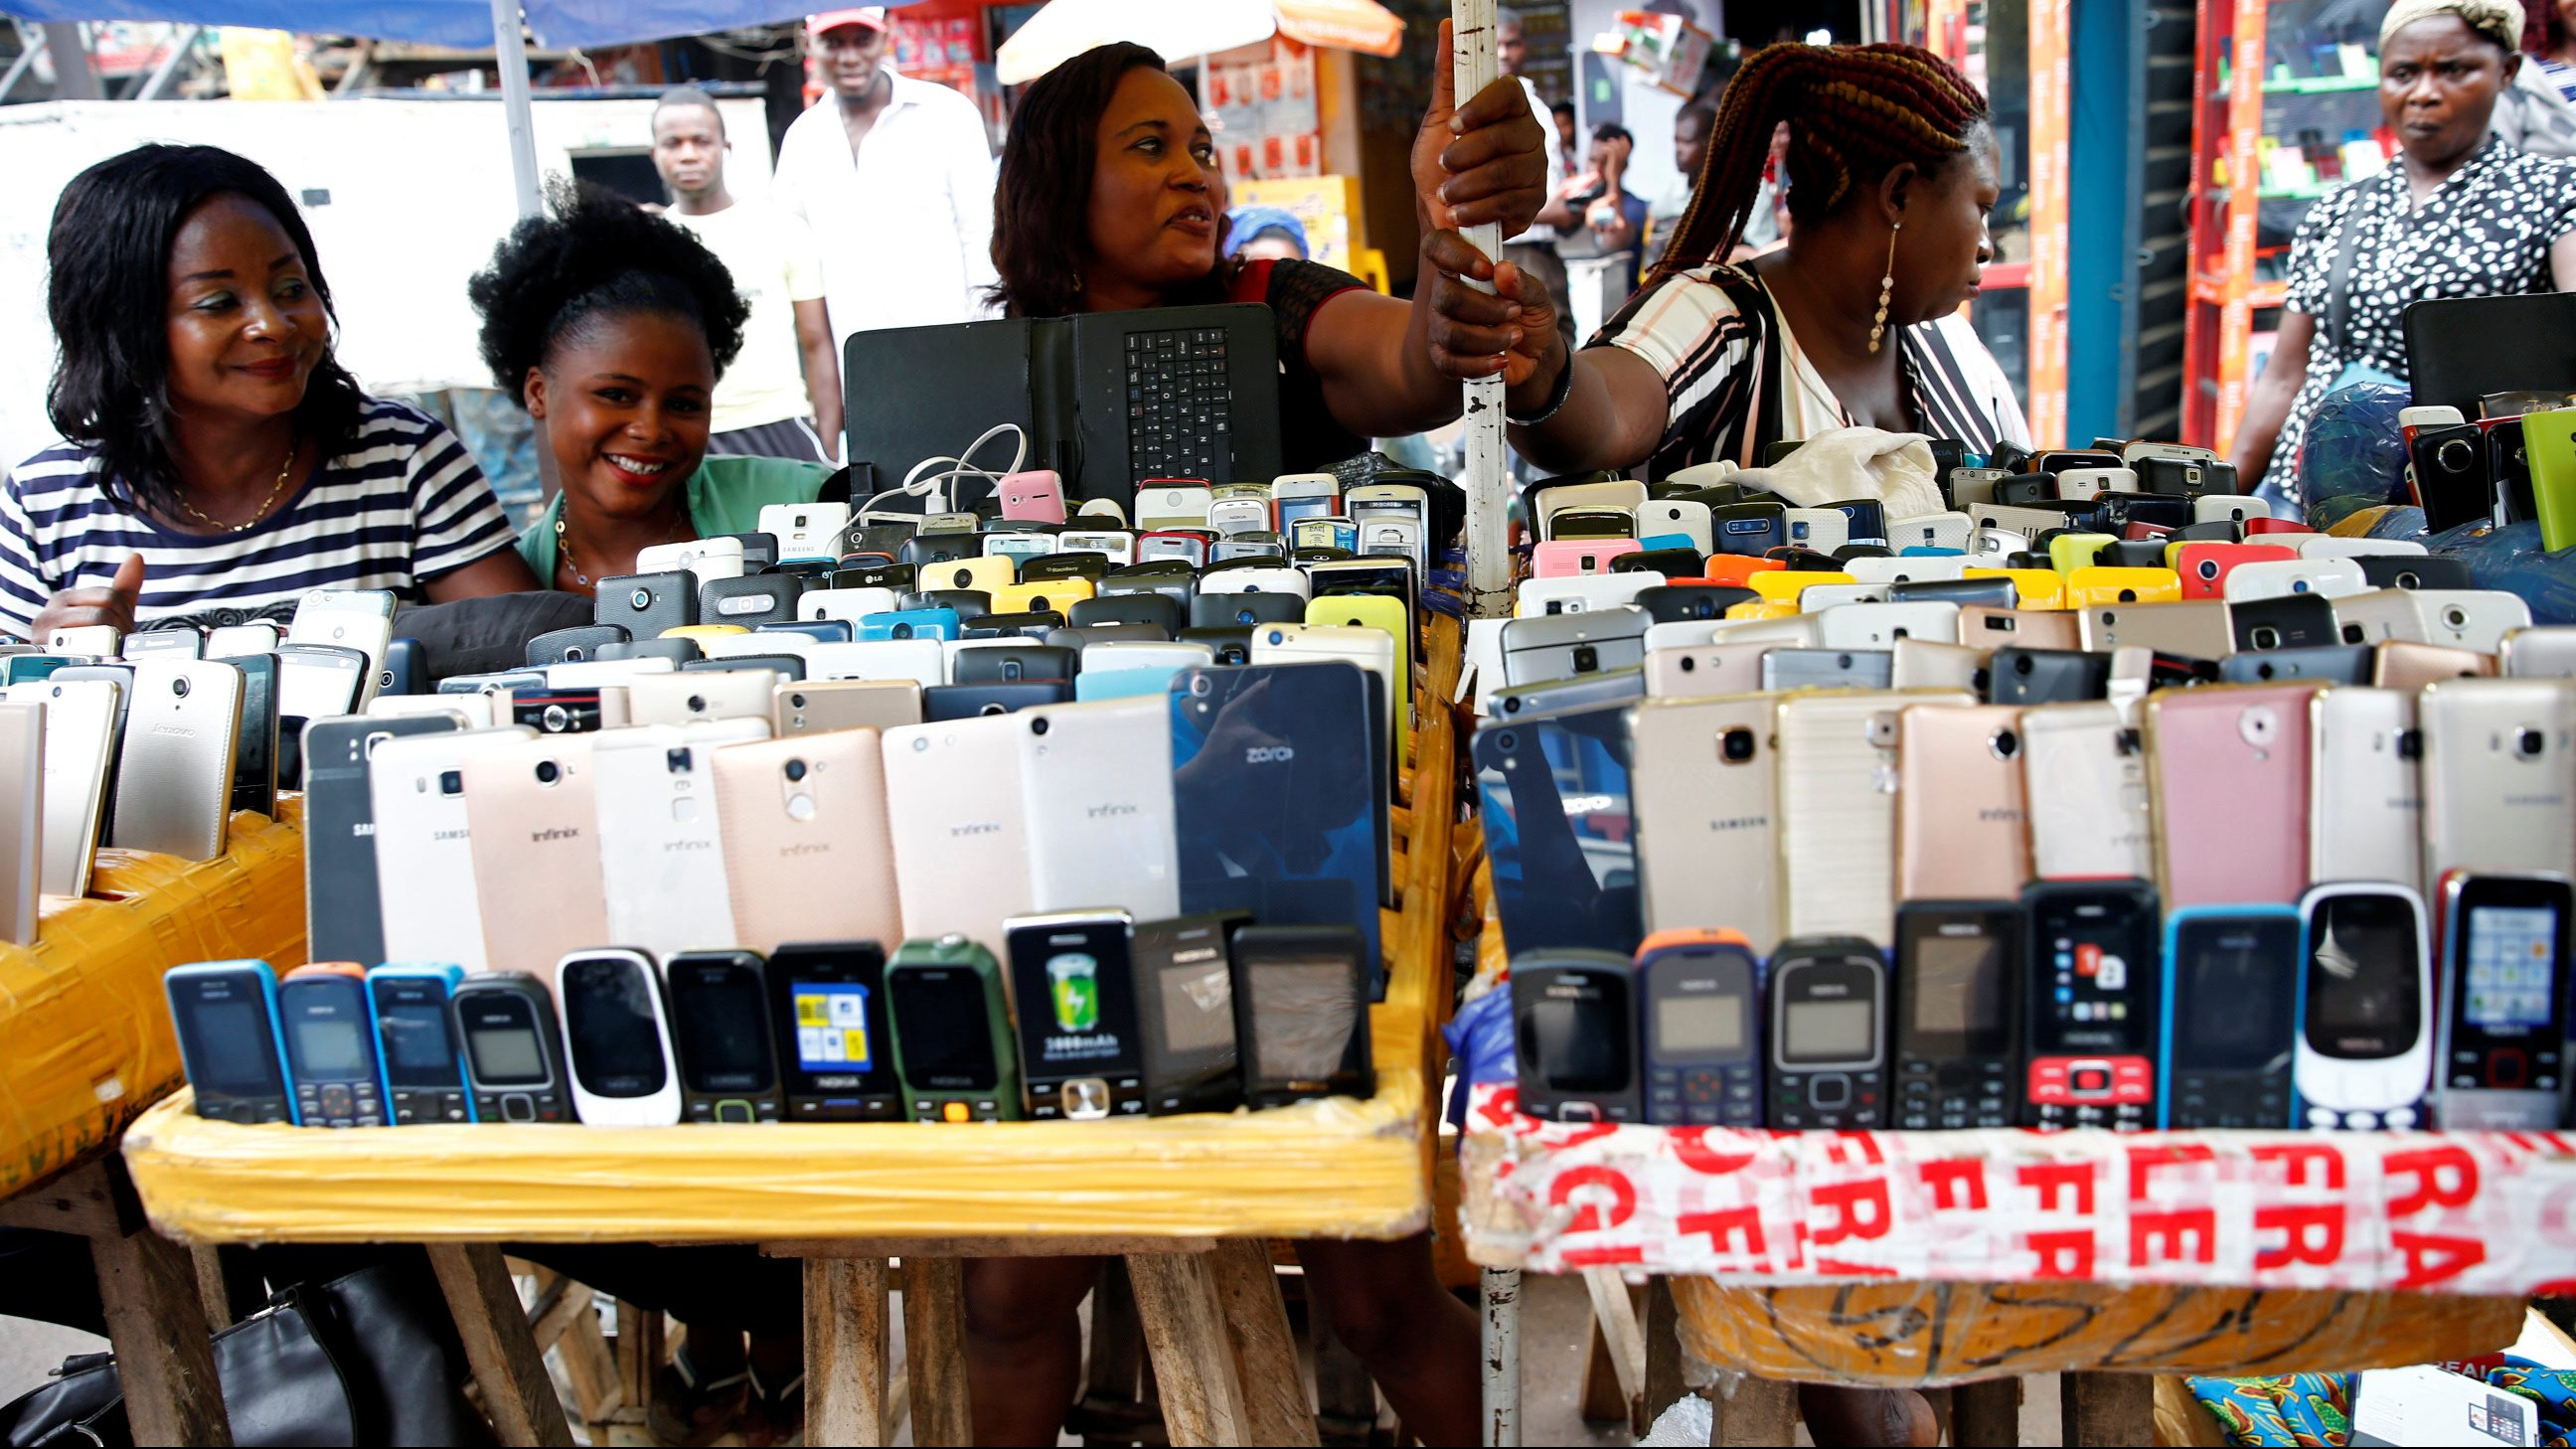 Women vendors display Nokia phone models for sale along with smartphones at the 'Computer Village' in Ikeja district in Nigeria's commercial capital Lagos, Nigeria May 31, 2017.